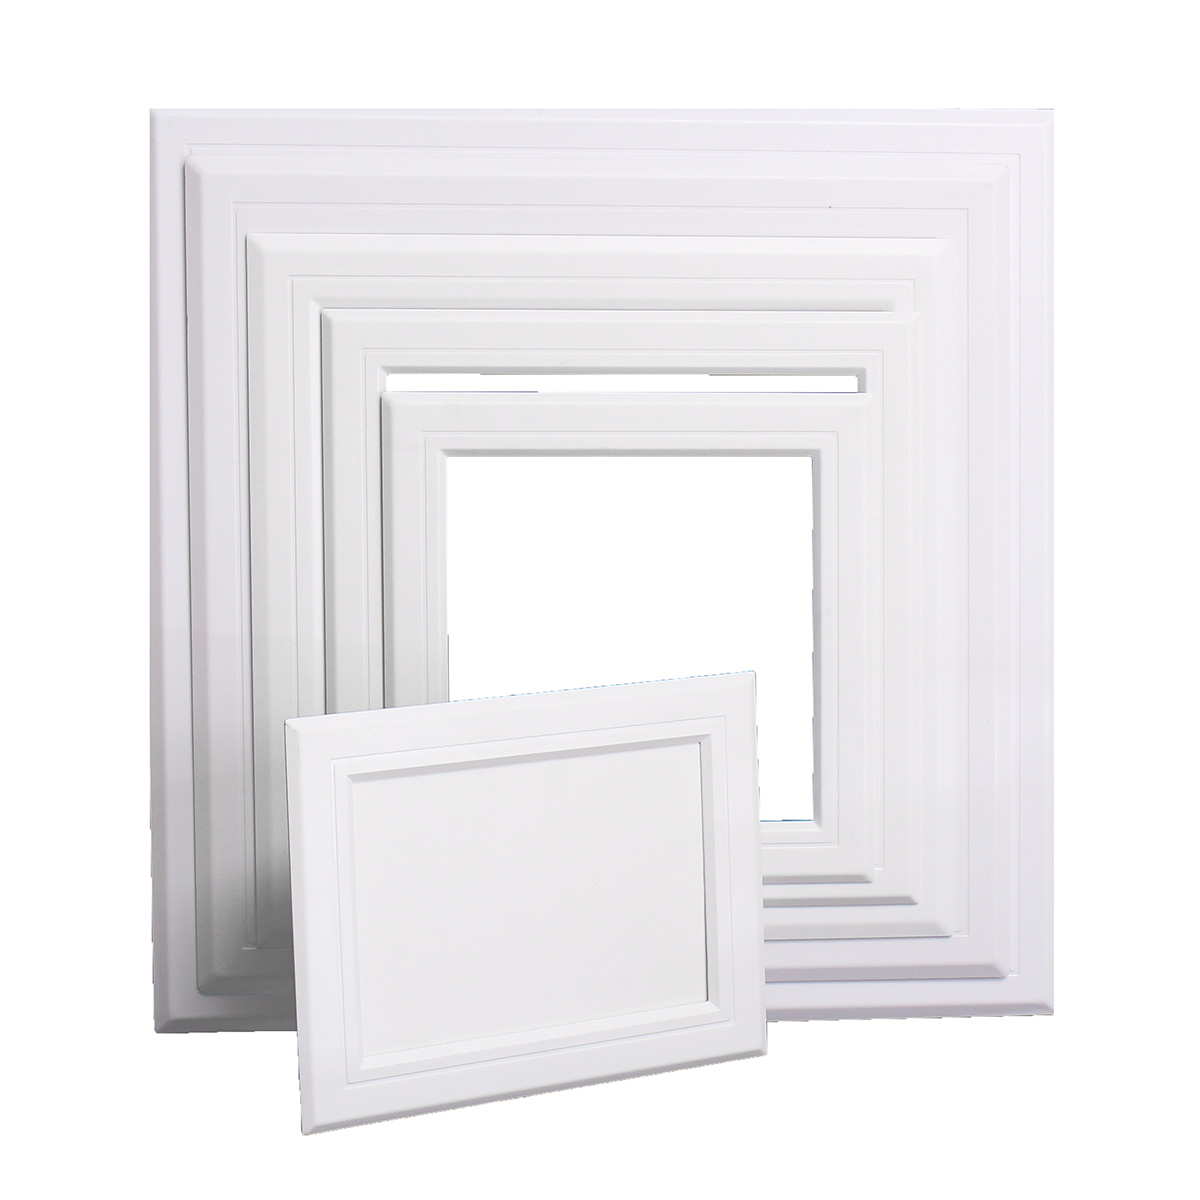 abs wall ceiling access panel 7 sizes white inspection plumbing wiring door revision hatch cover in core vents from home improvement on aliexpress com  [ 1200 x 1200 Pixel ]